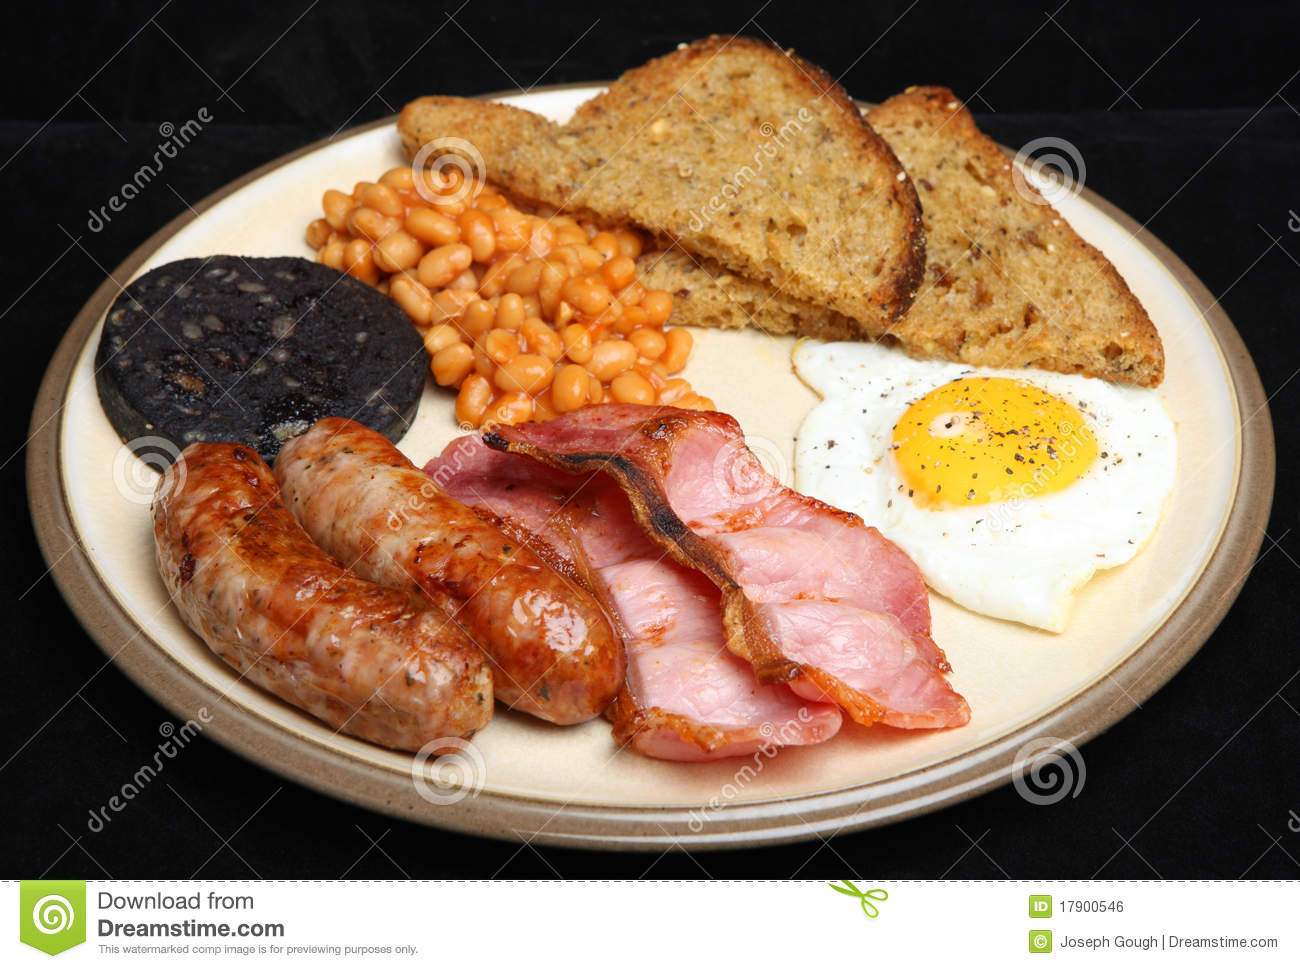 how to cook english breakfast